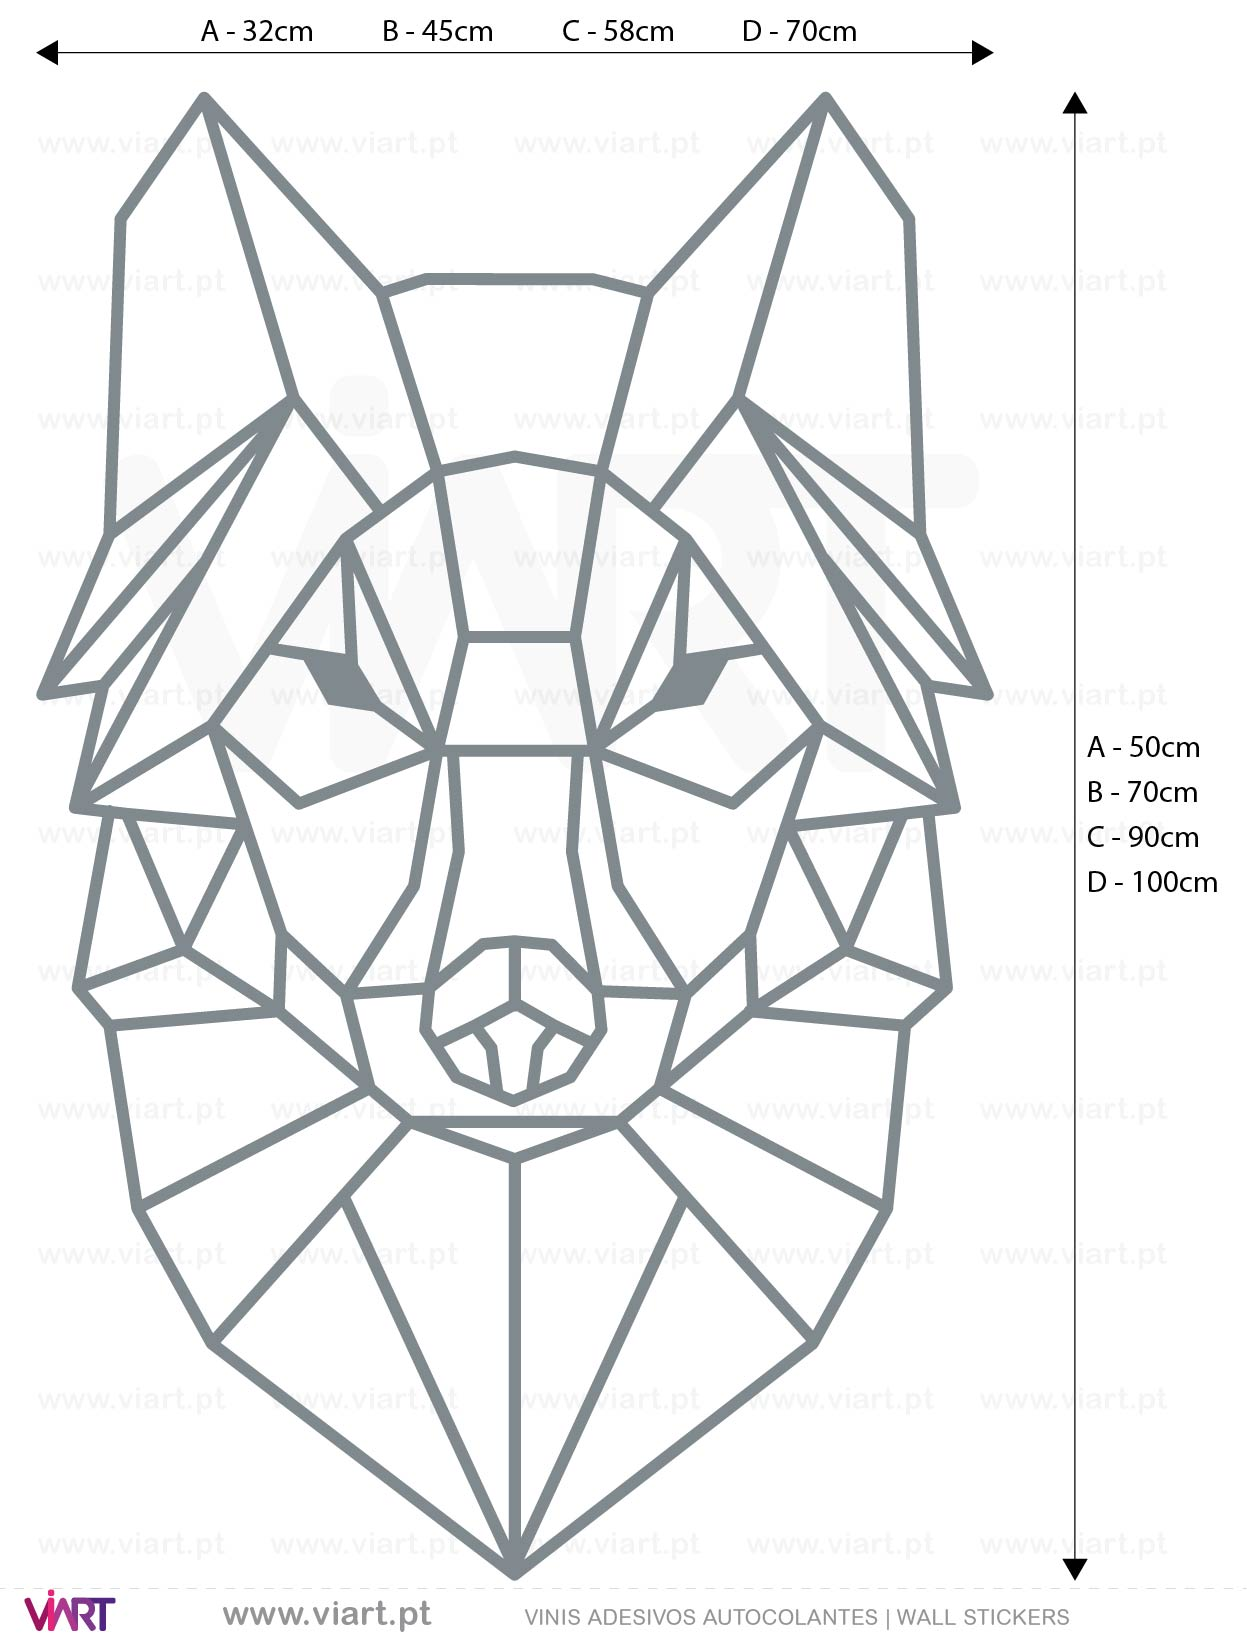 Viart - WALL STICKERS - Geometric Wolf Head Decal! Origami! Medidas